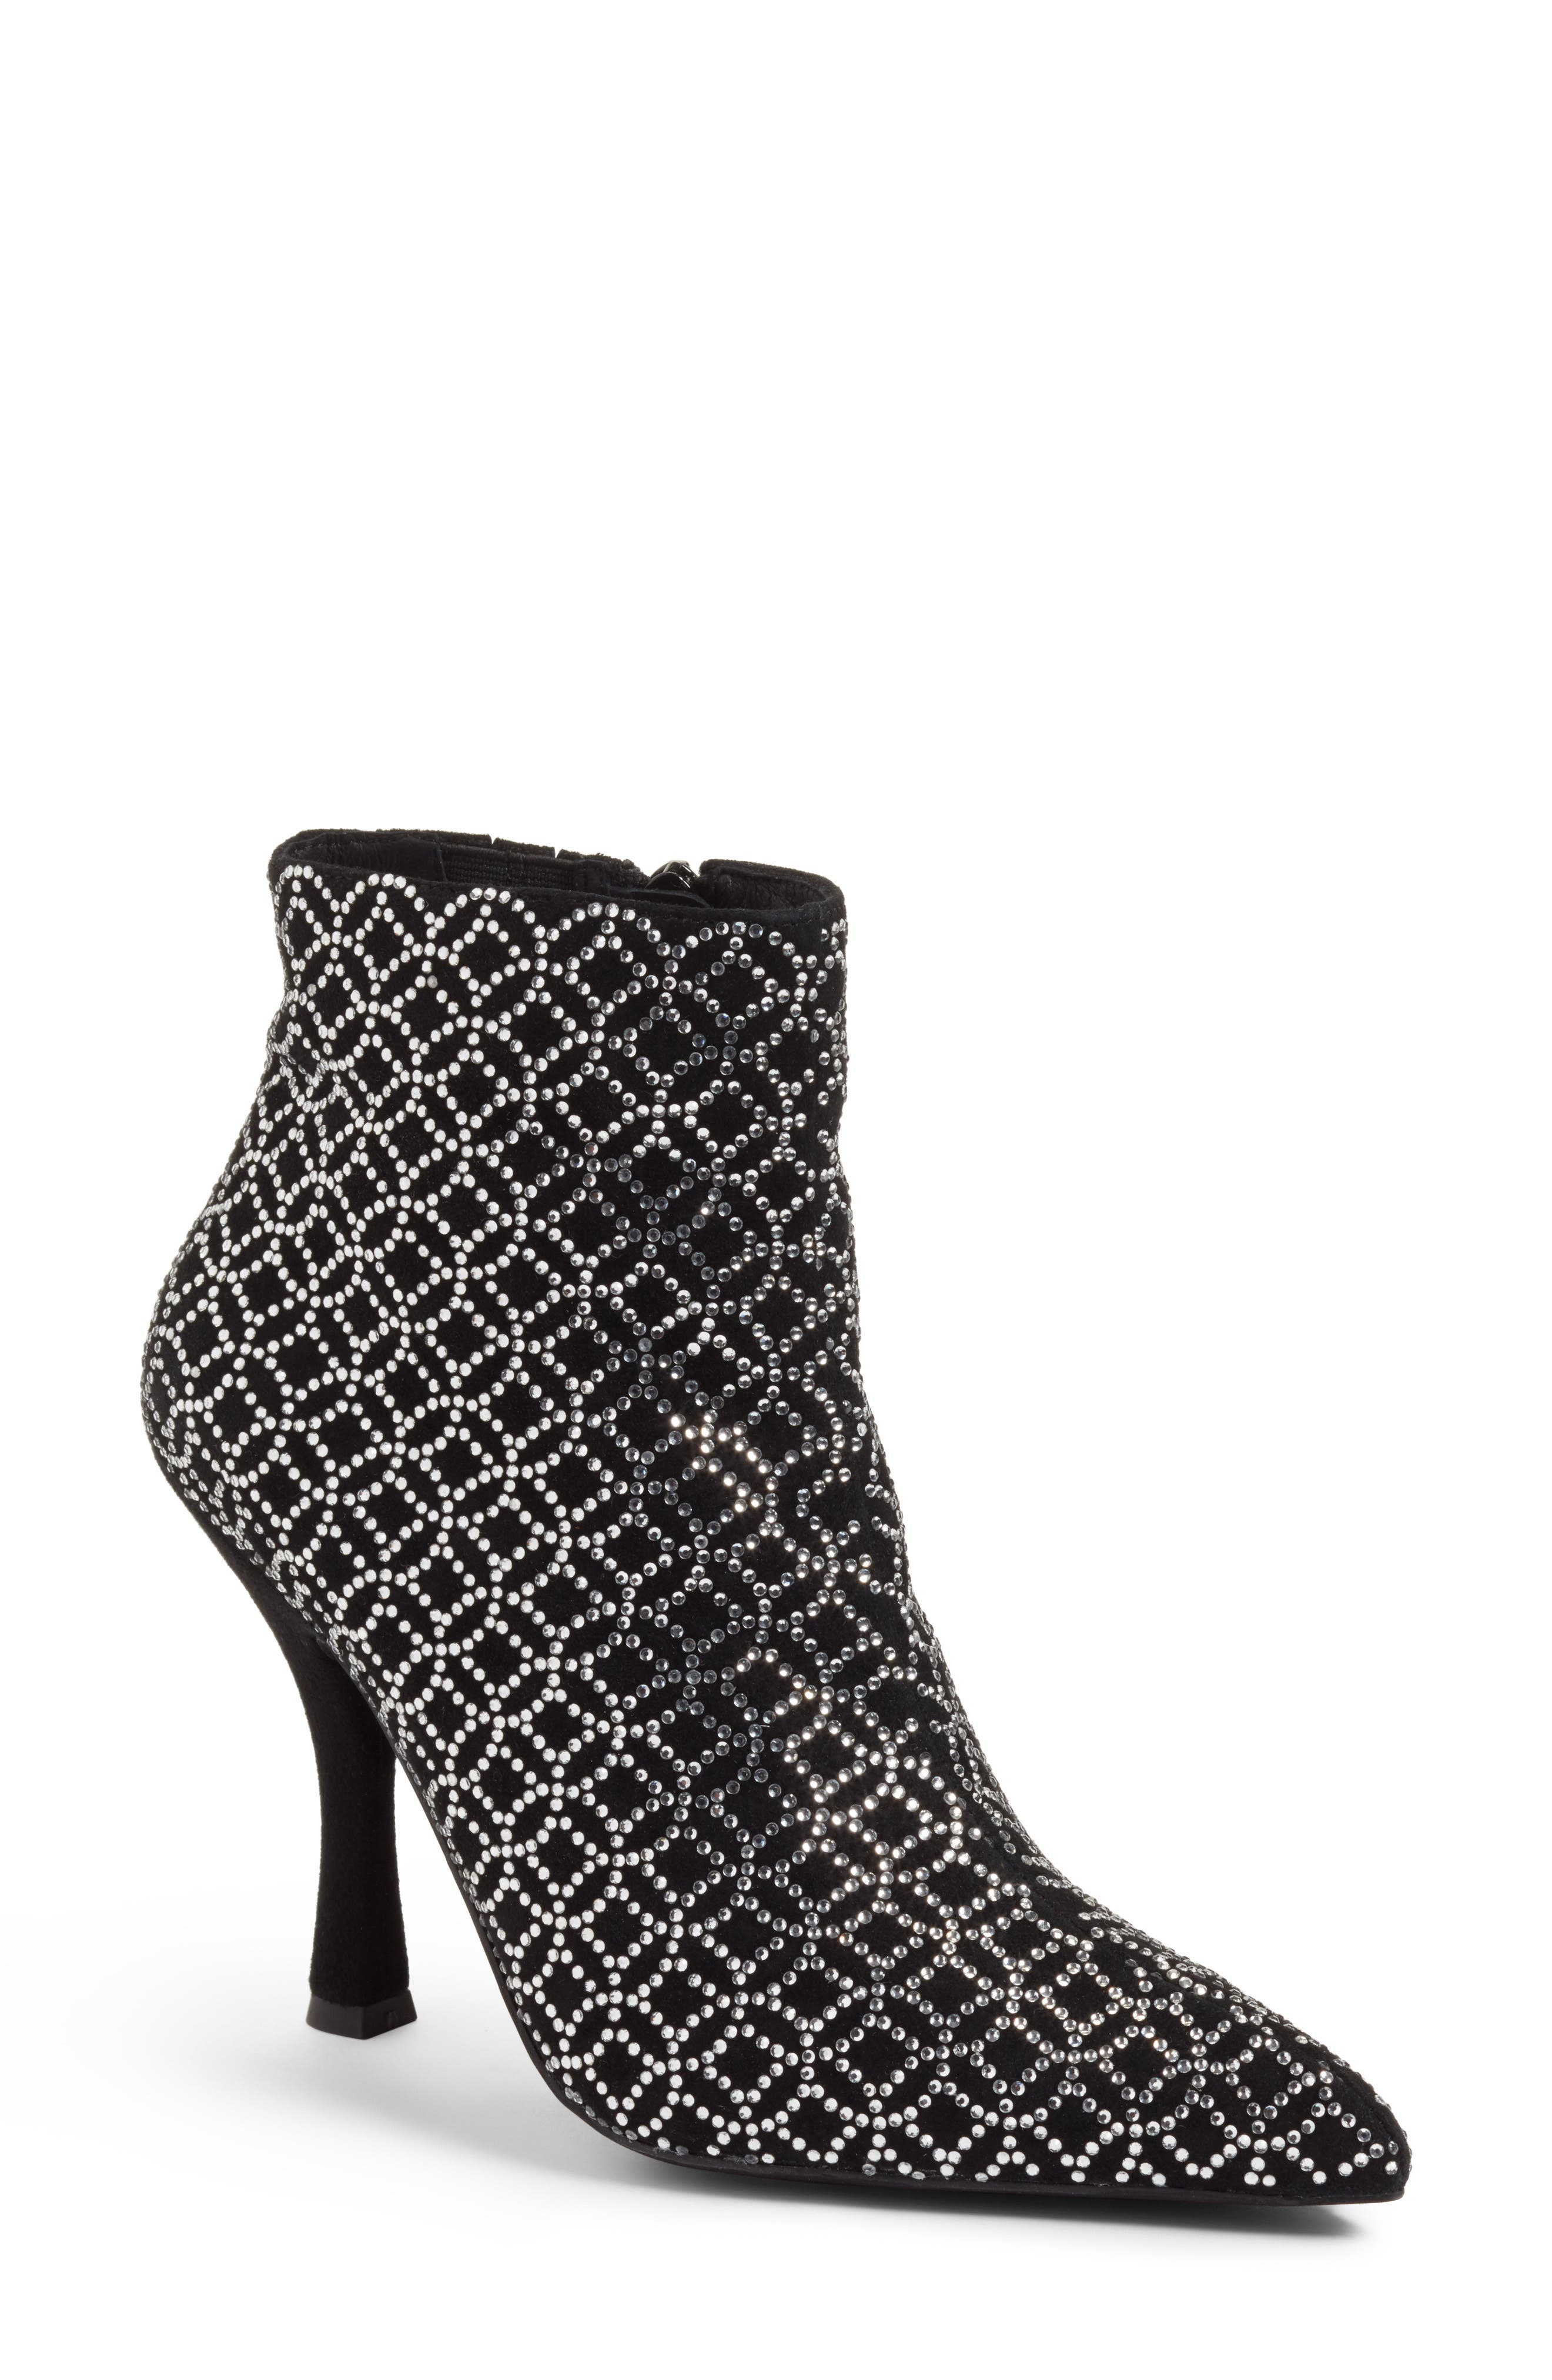 Main Image - Jeffrey Campbell Brillo Crystal Embellished Bootie (Women)